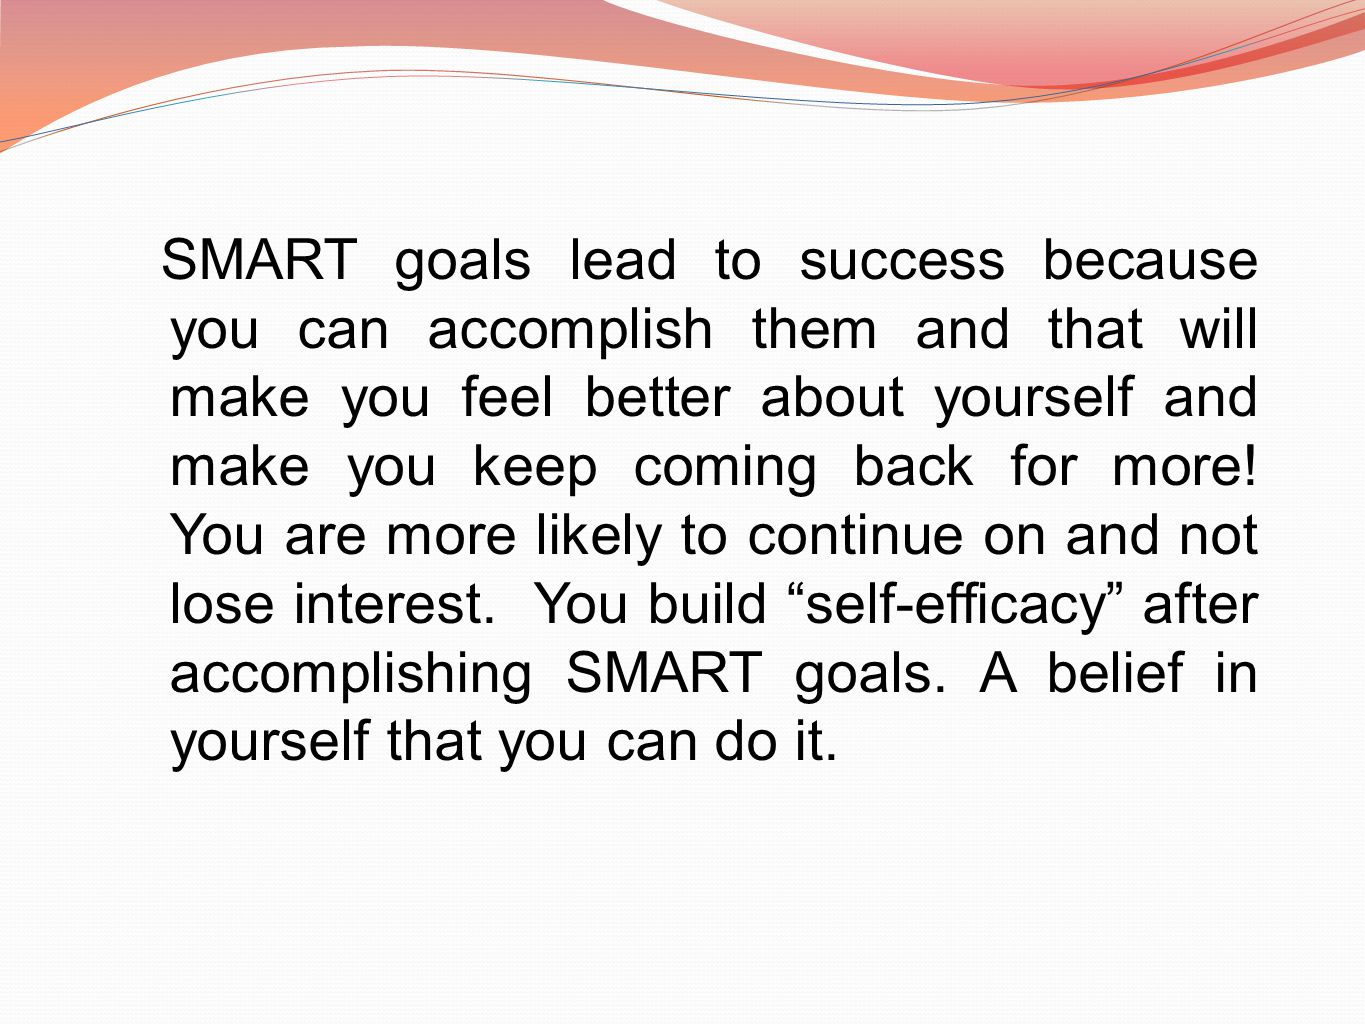 SMART goals lead to success because you can accomplish them and that will make you feel better about yourself and make you keep coming back for more.